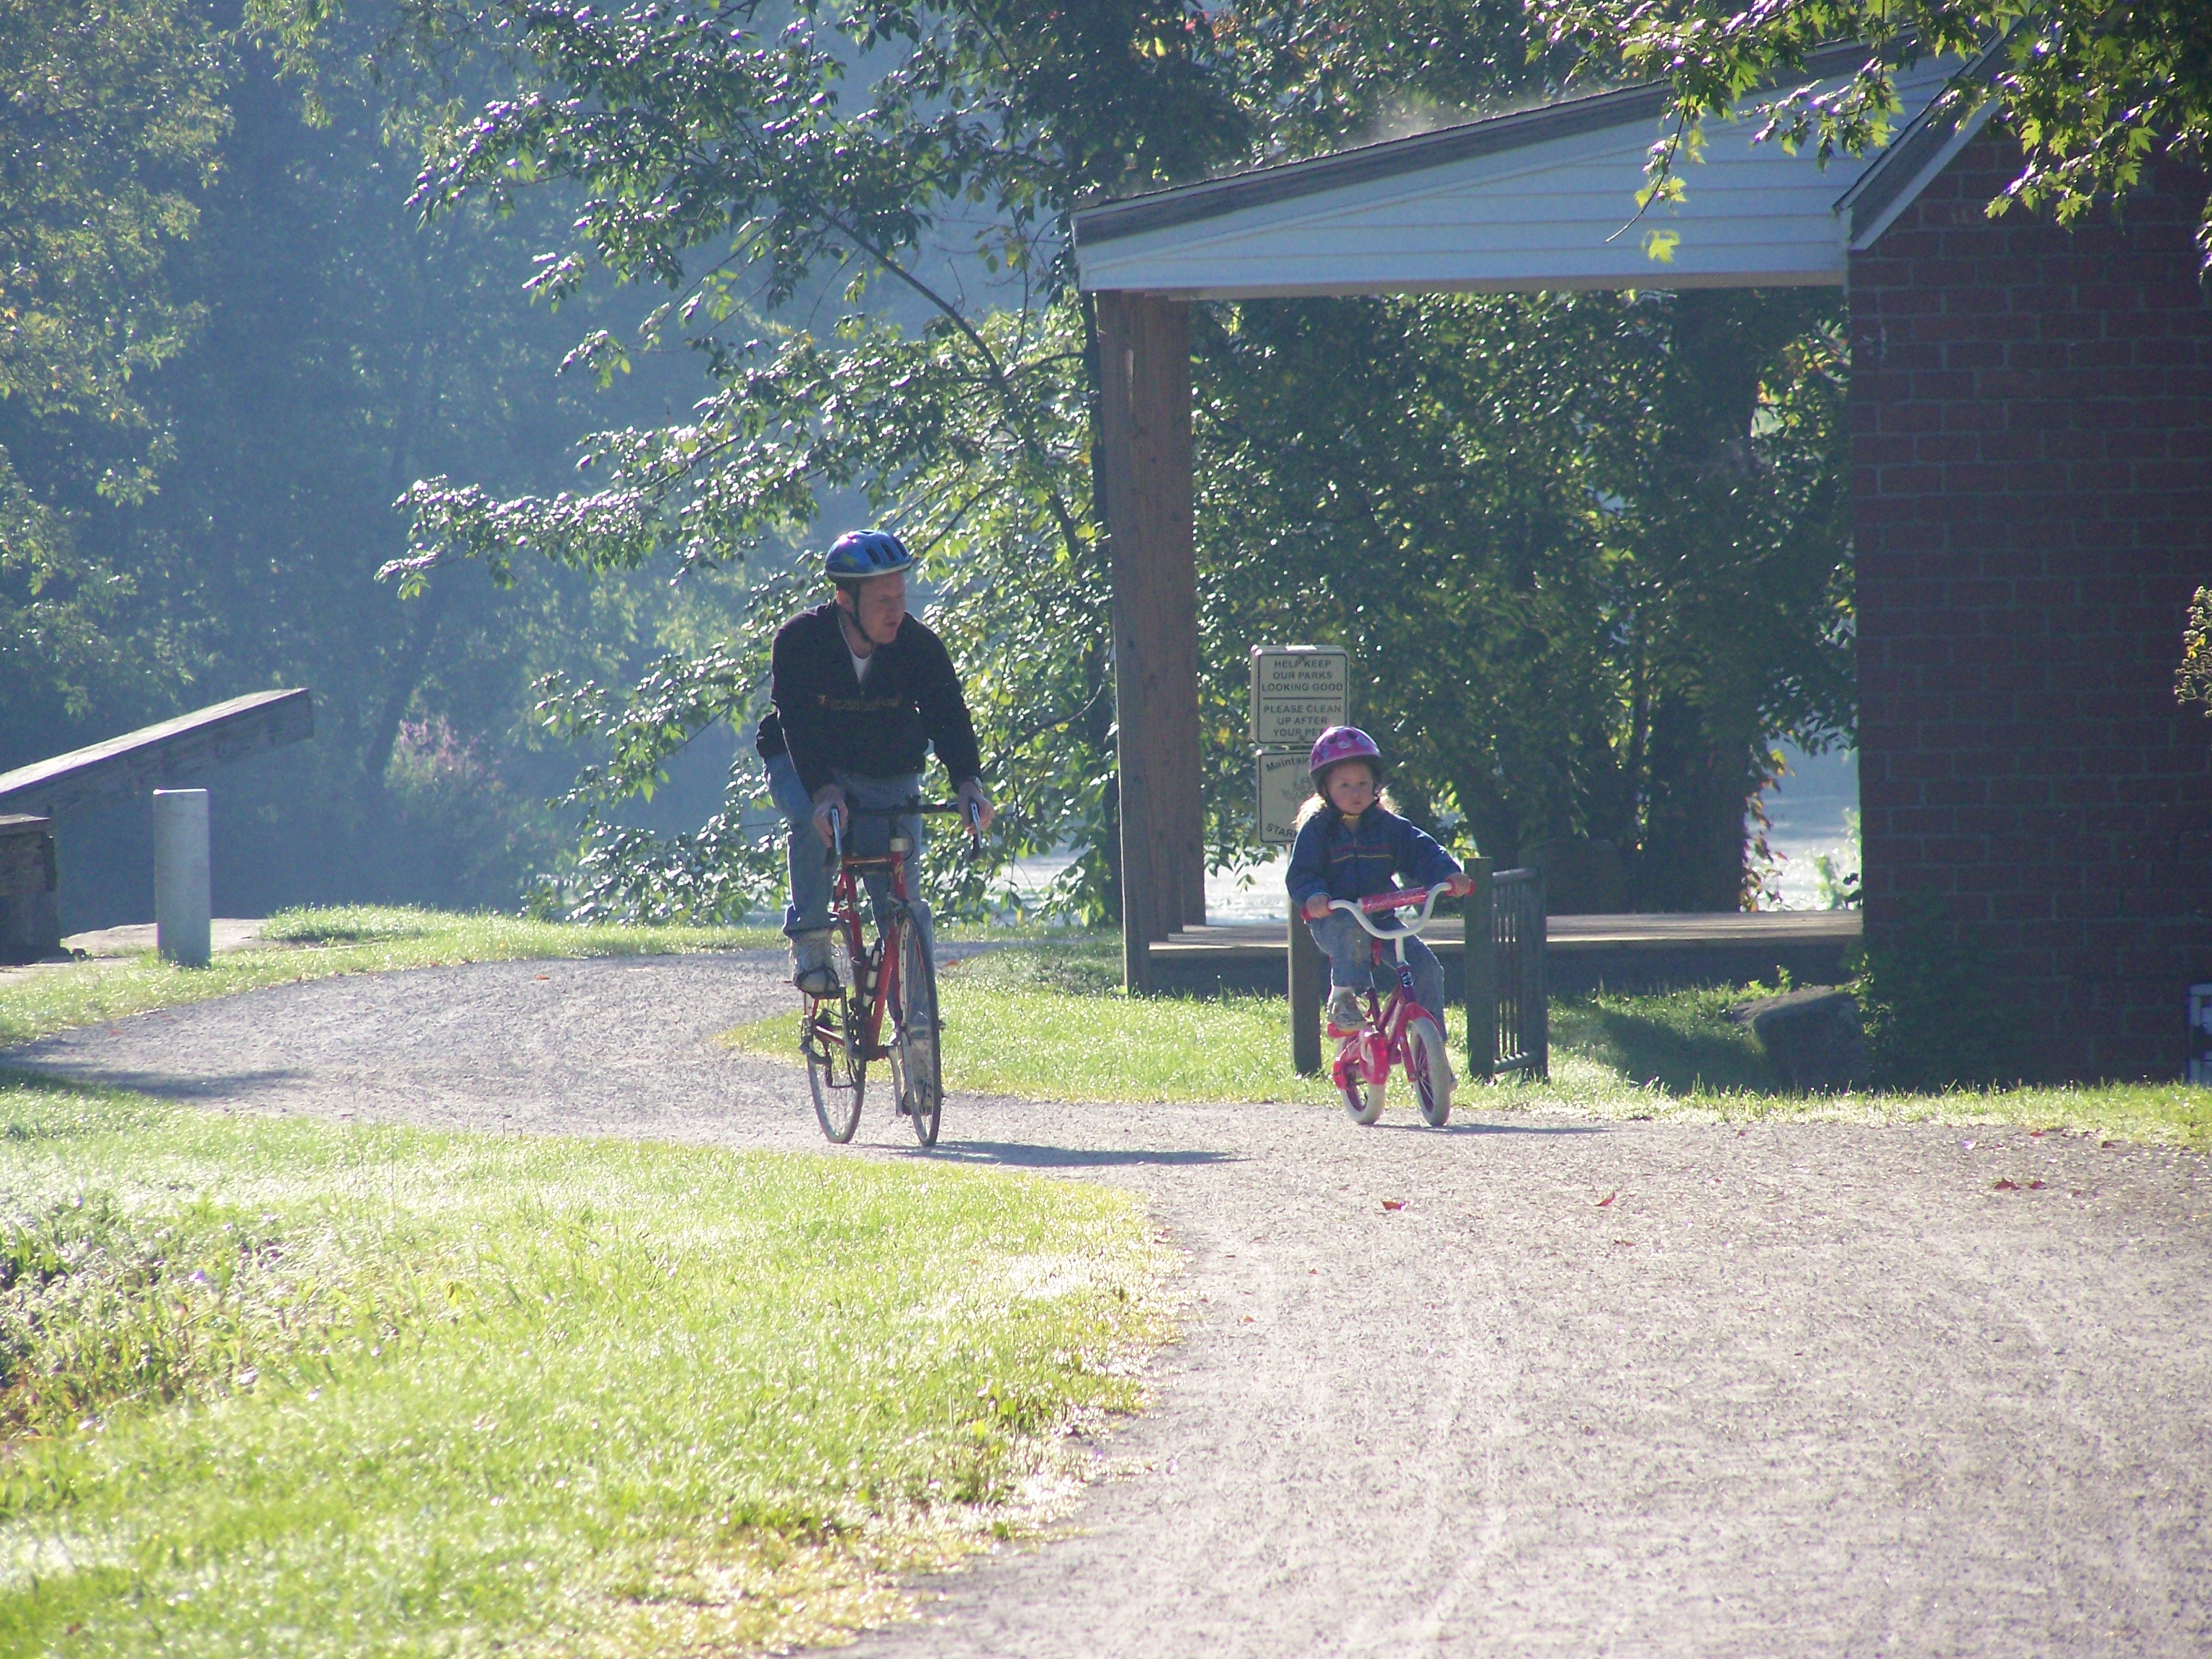 Kaitlyn and I riding our bicycles on the Towpath Trail in Canal Fulton